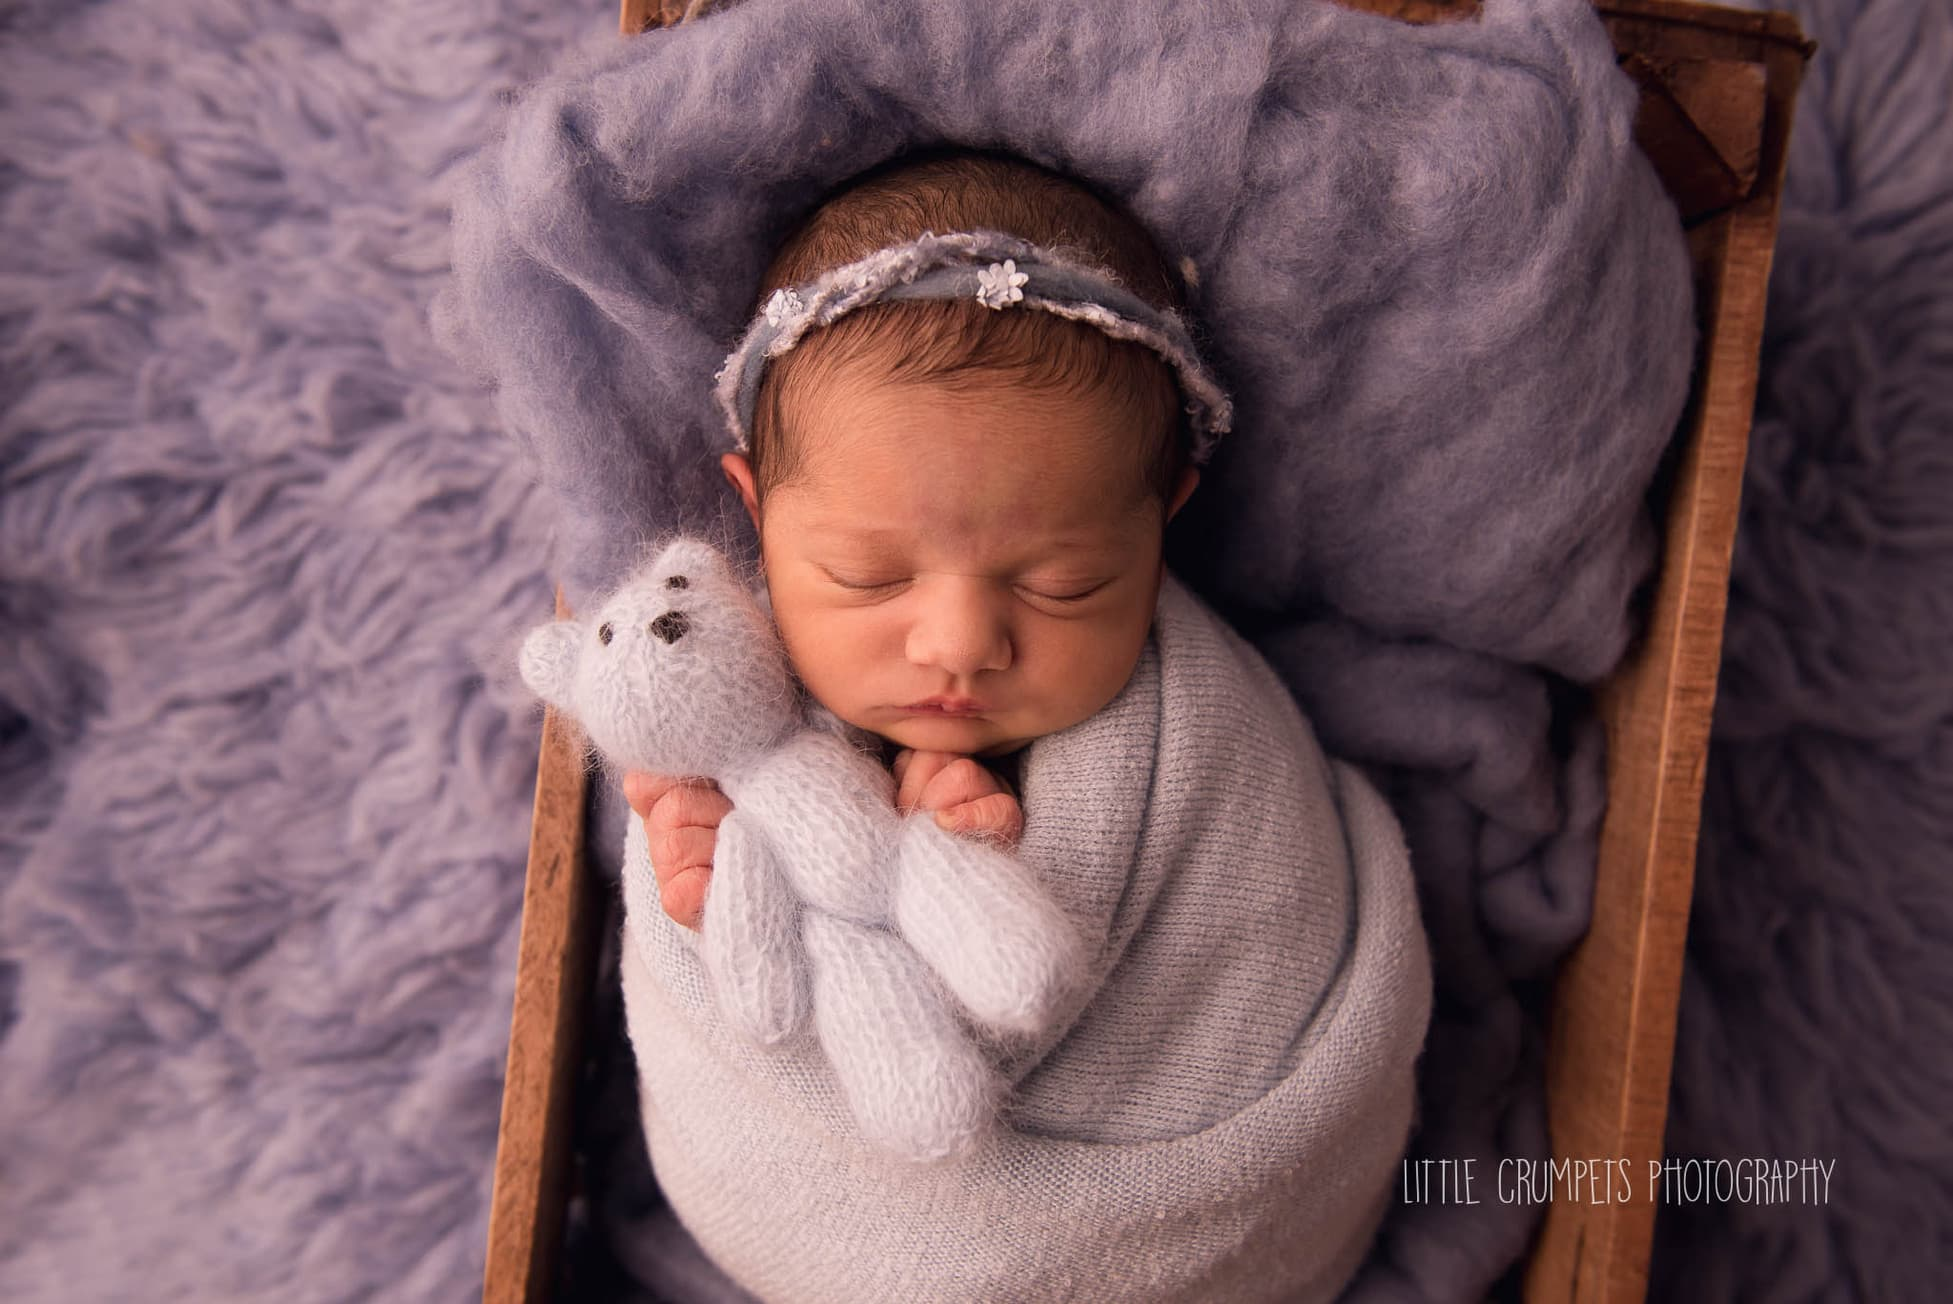 London baby photographer how old should my newborn be for their newborn photography session